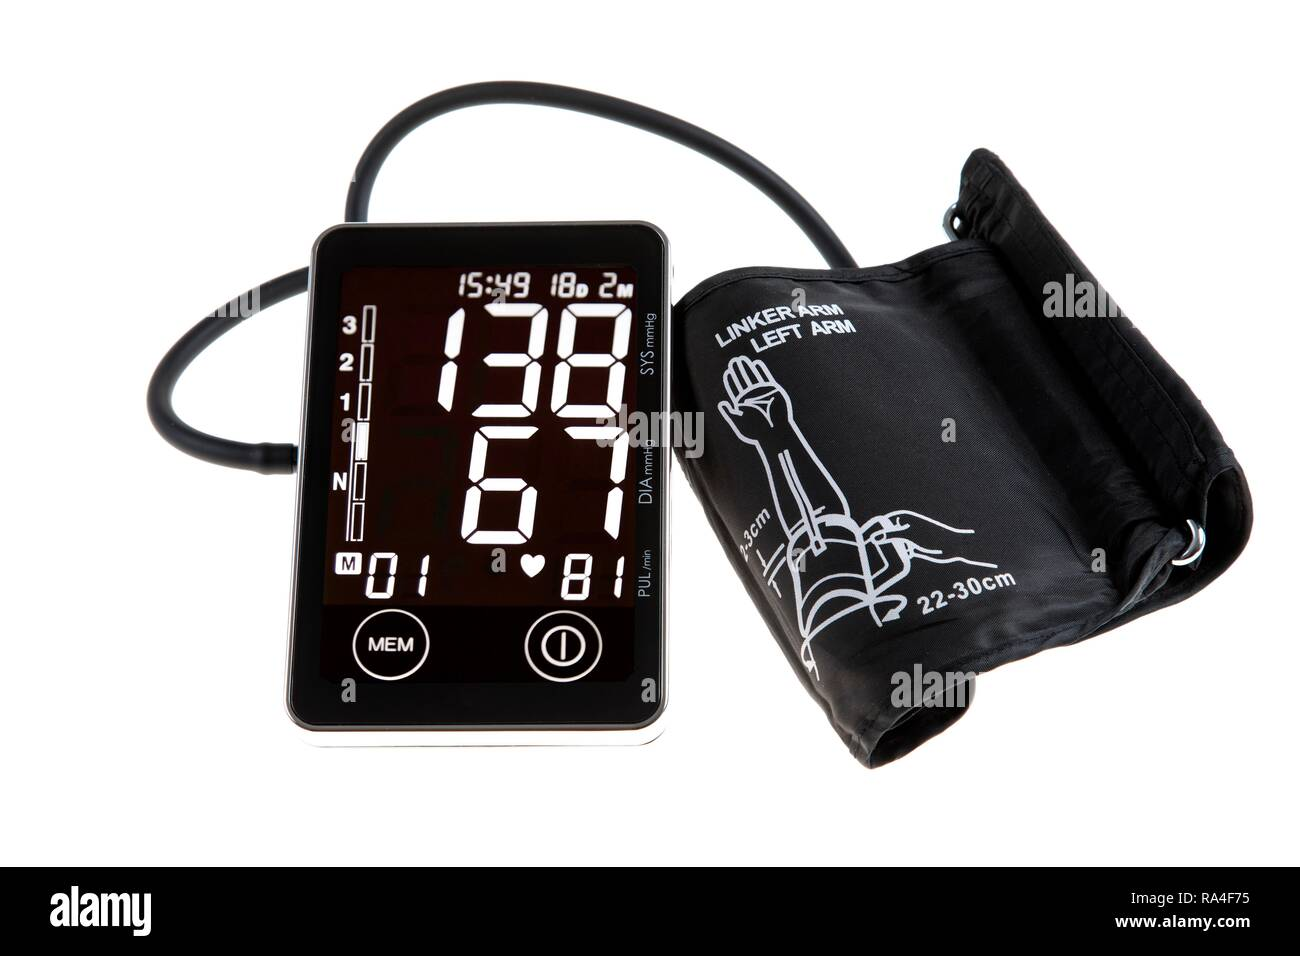 Blood pressure monitor, digital display, upper arm cuff, for self-measurement - Stock Image